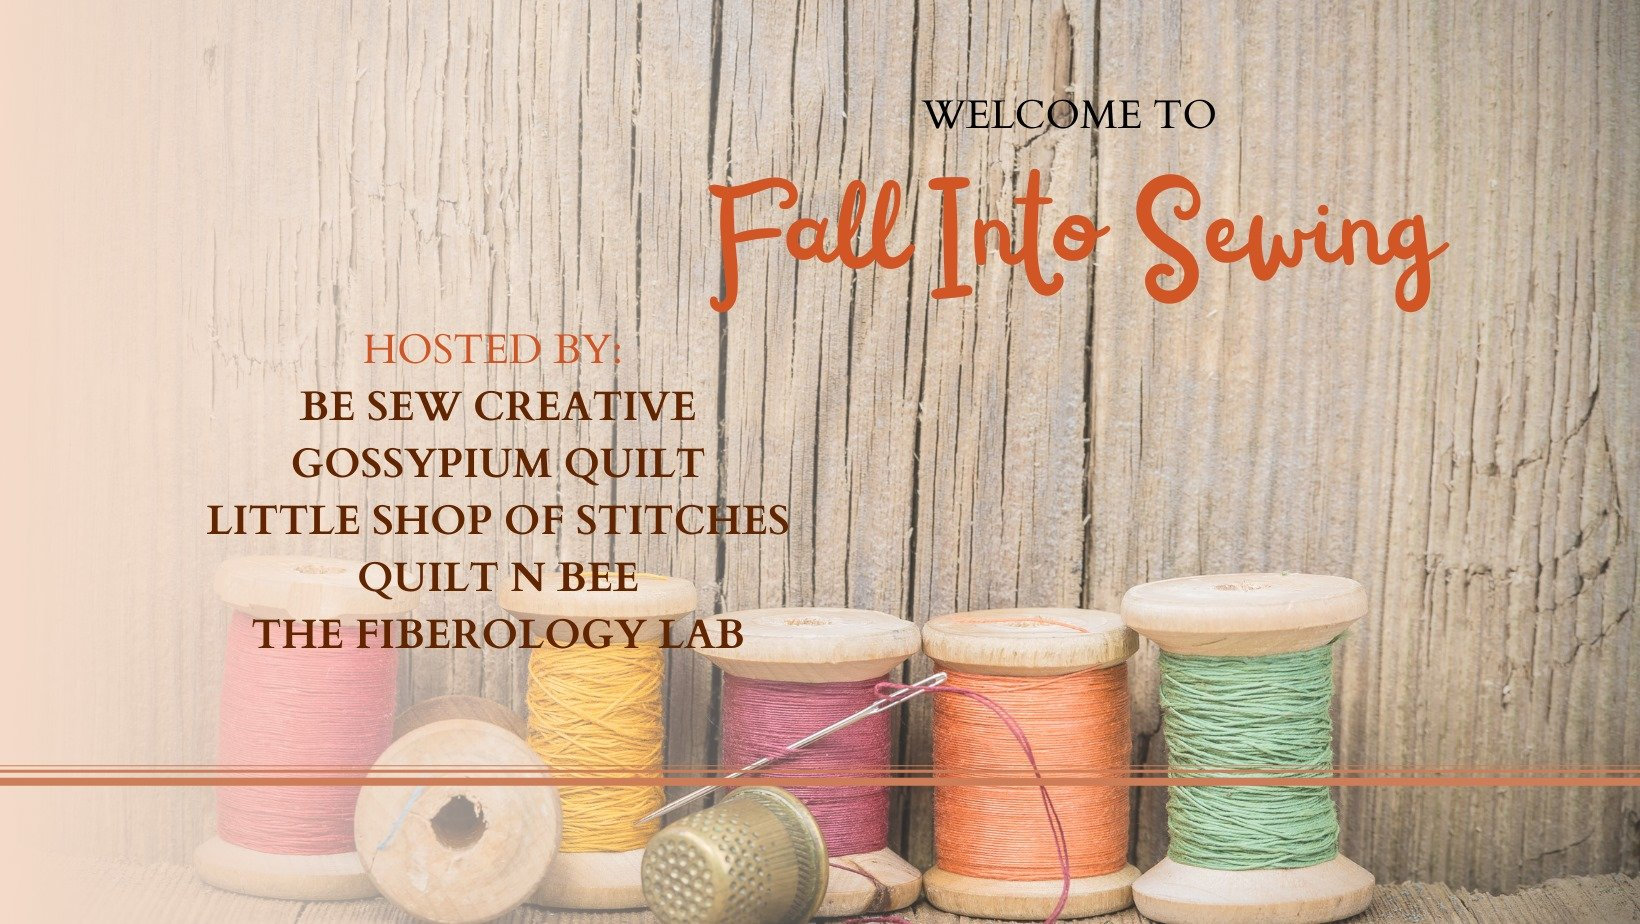 Fall into Sewing-Complete Patterns Kit